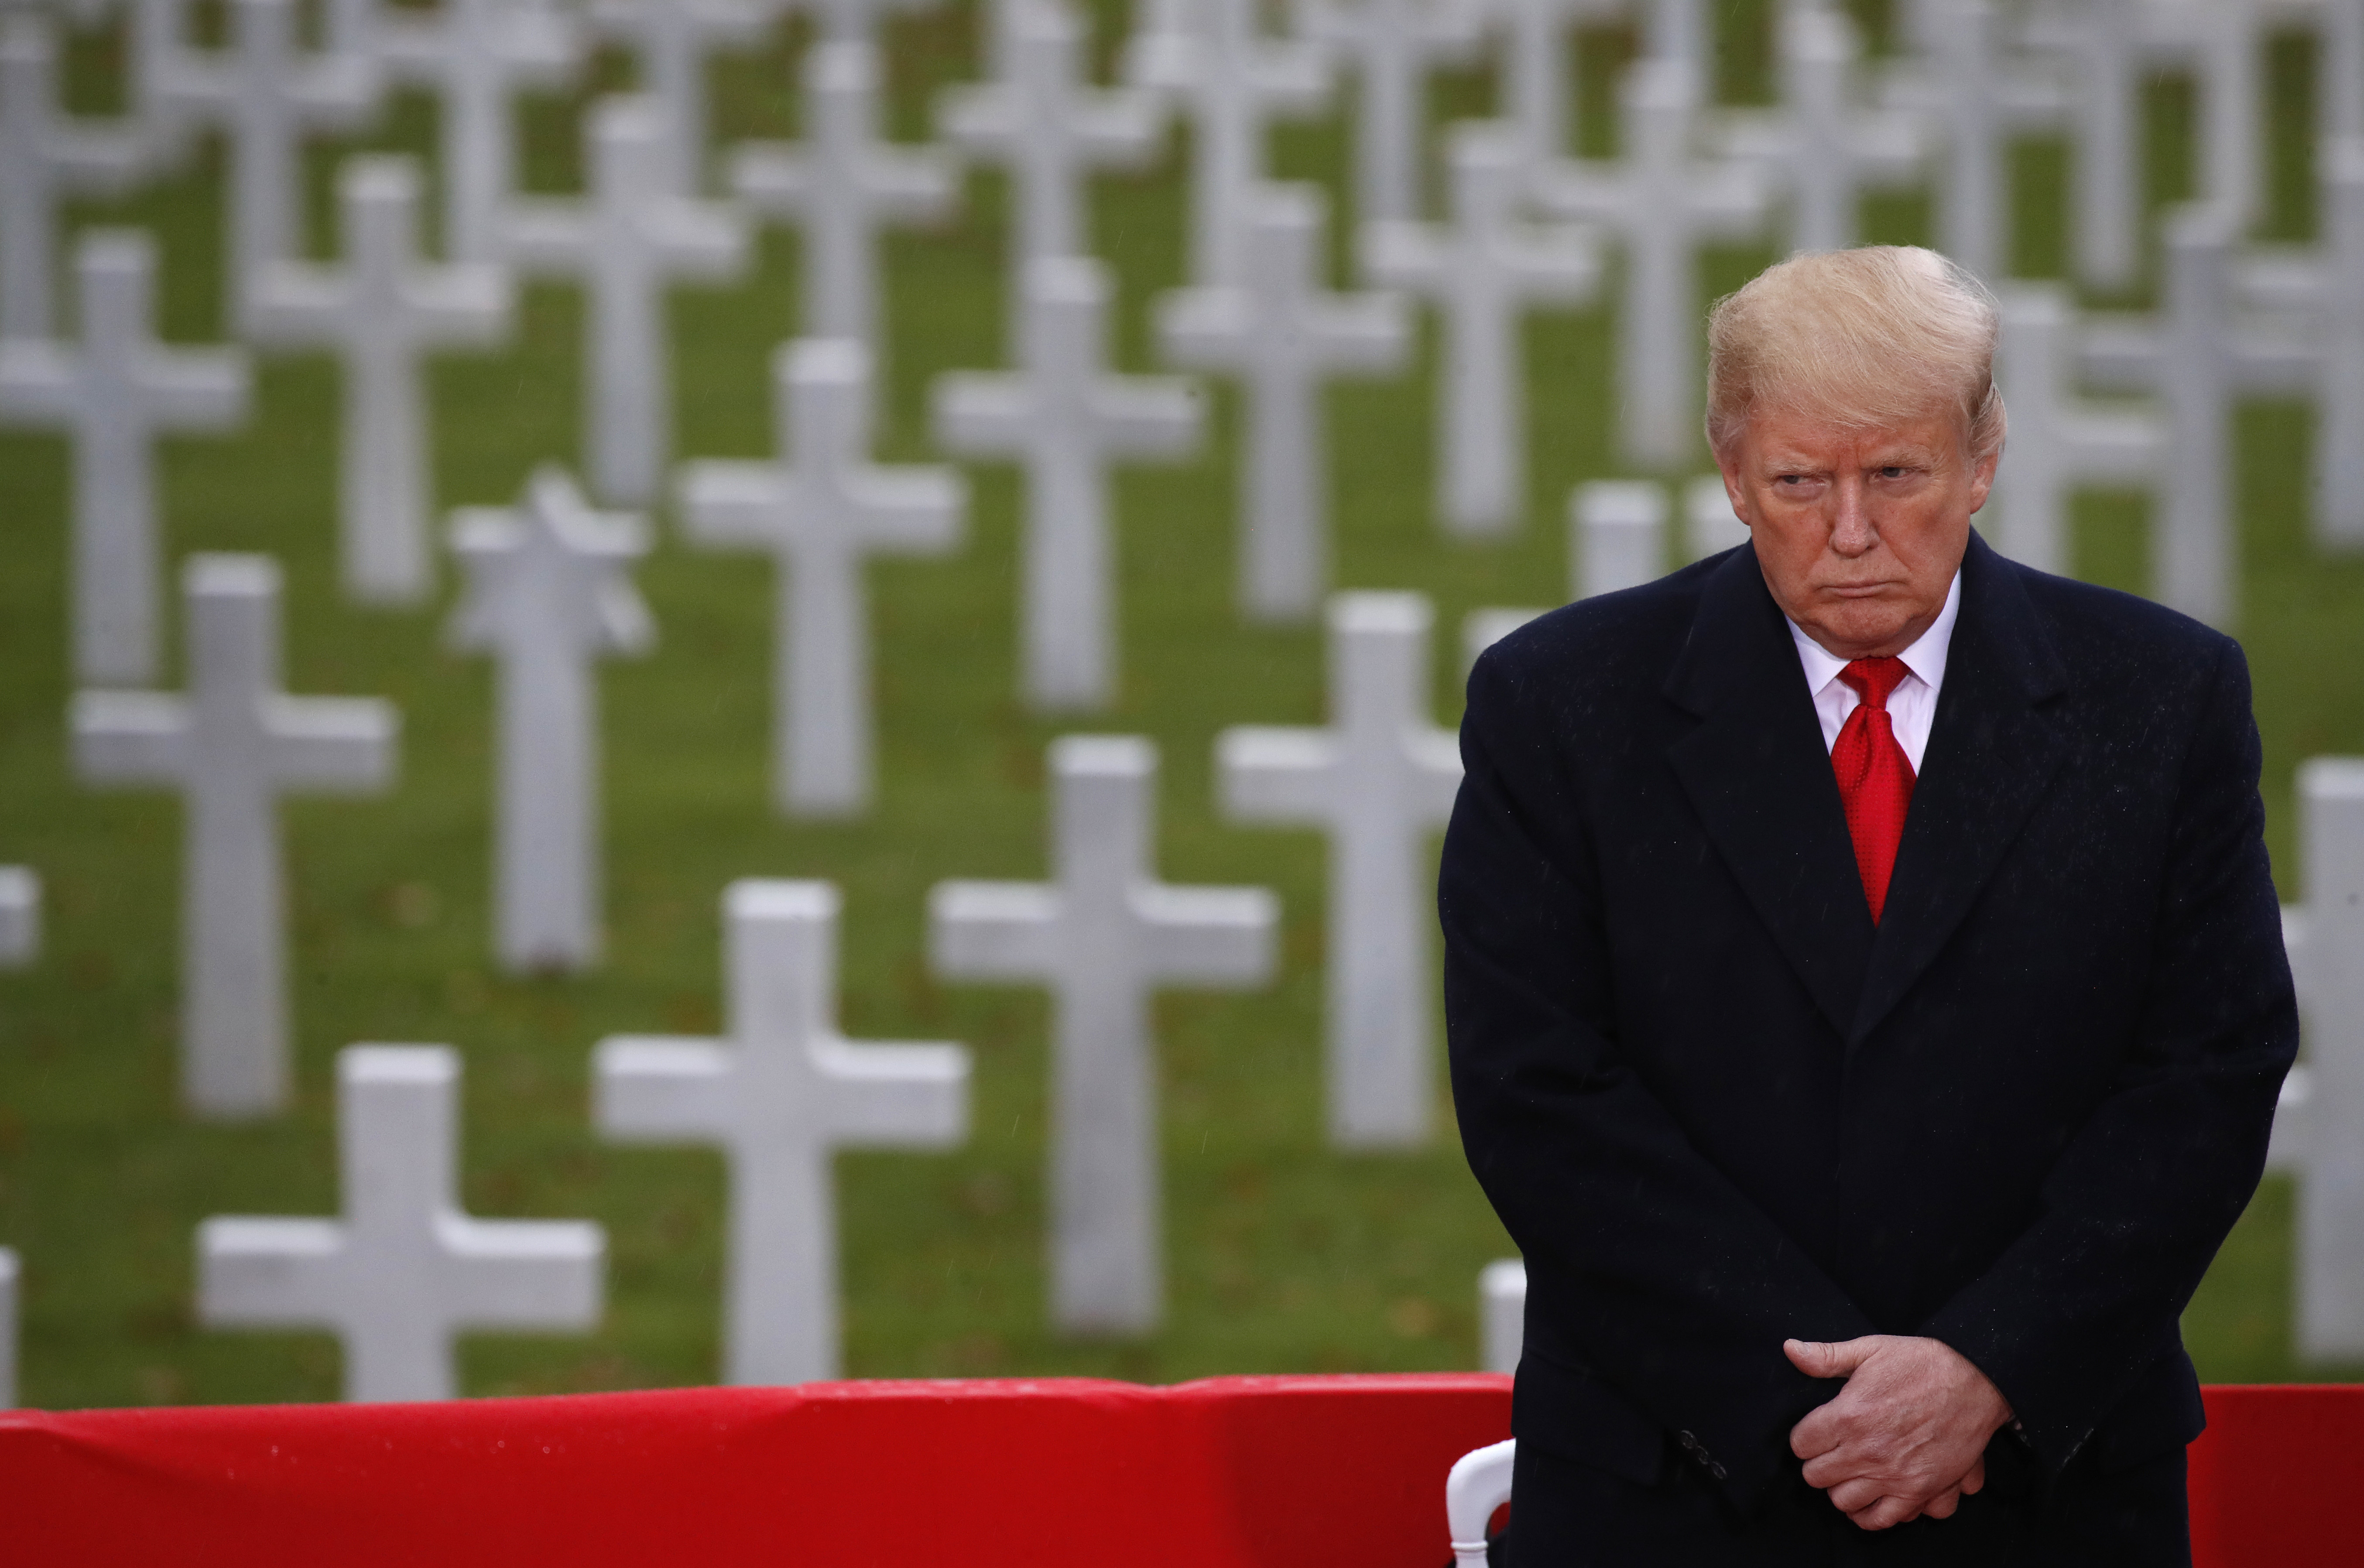 President Donald Trump stands in front of headstones during an American Commemoration Ceremony on Nov. 11, 2018, at Suresnes American Cemetery near Paris. (Jacquelyn Martin/AP)